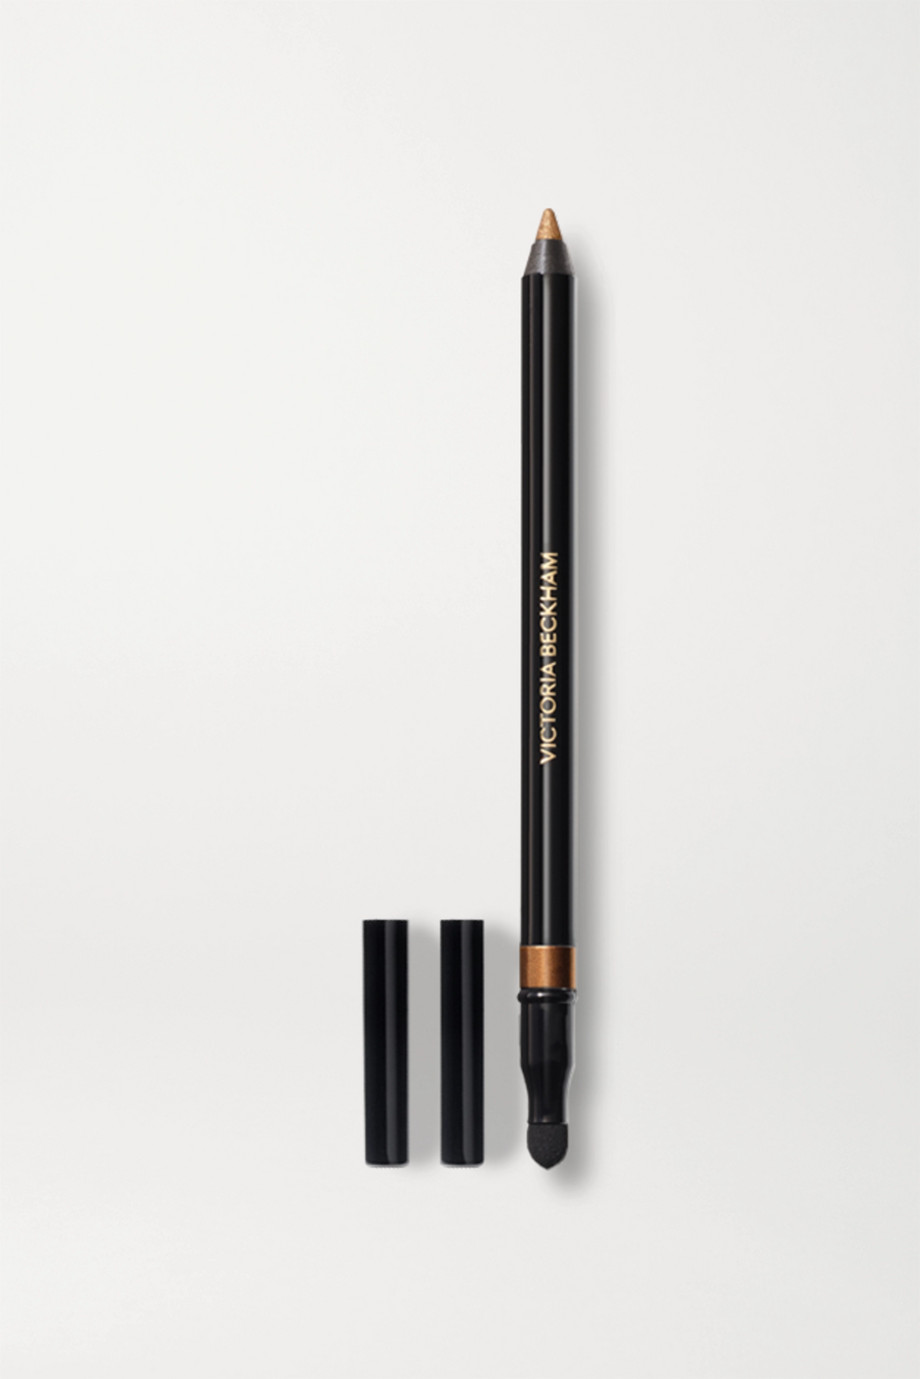 Victoria Beckham Beauty Eye-liner Satin Kajal, Bronze